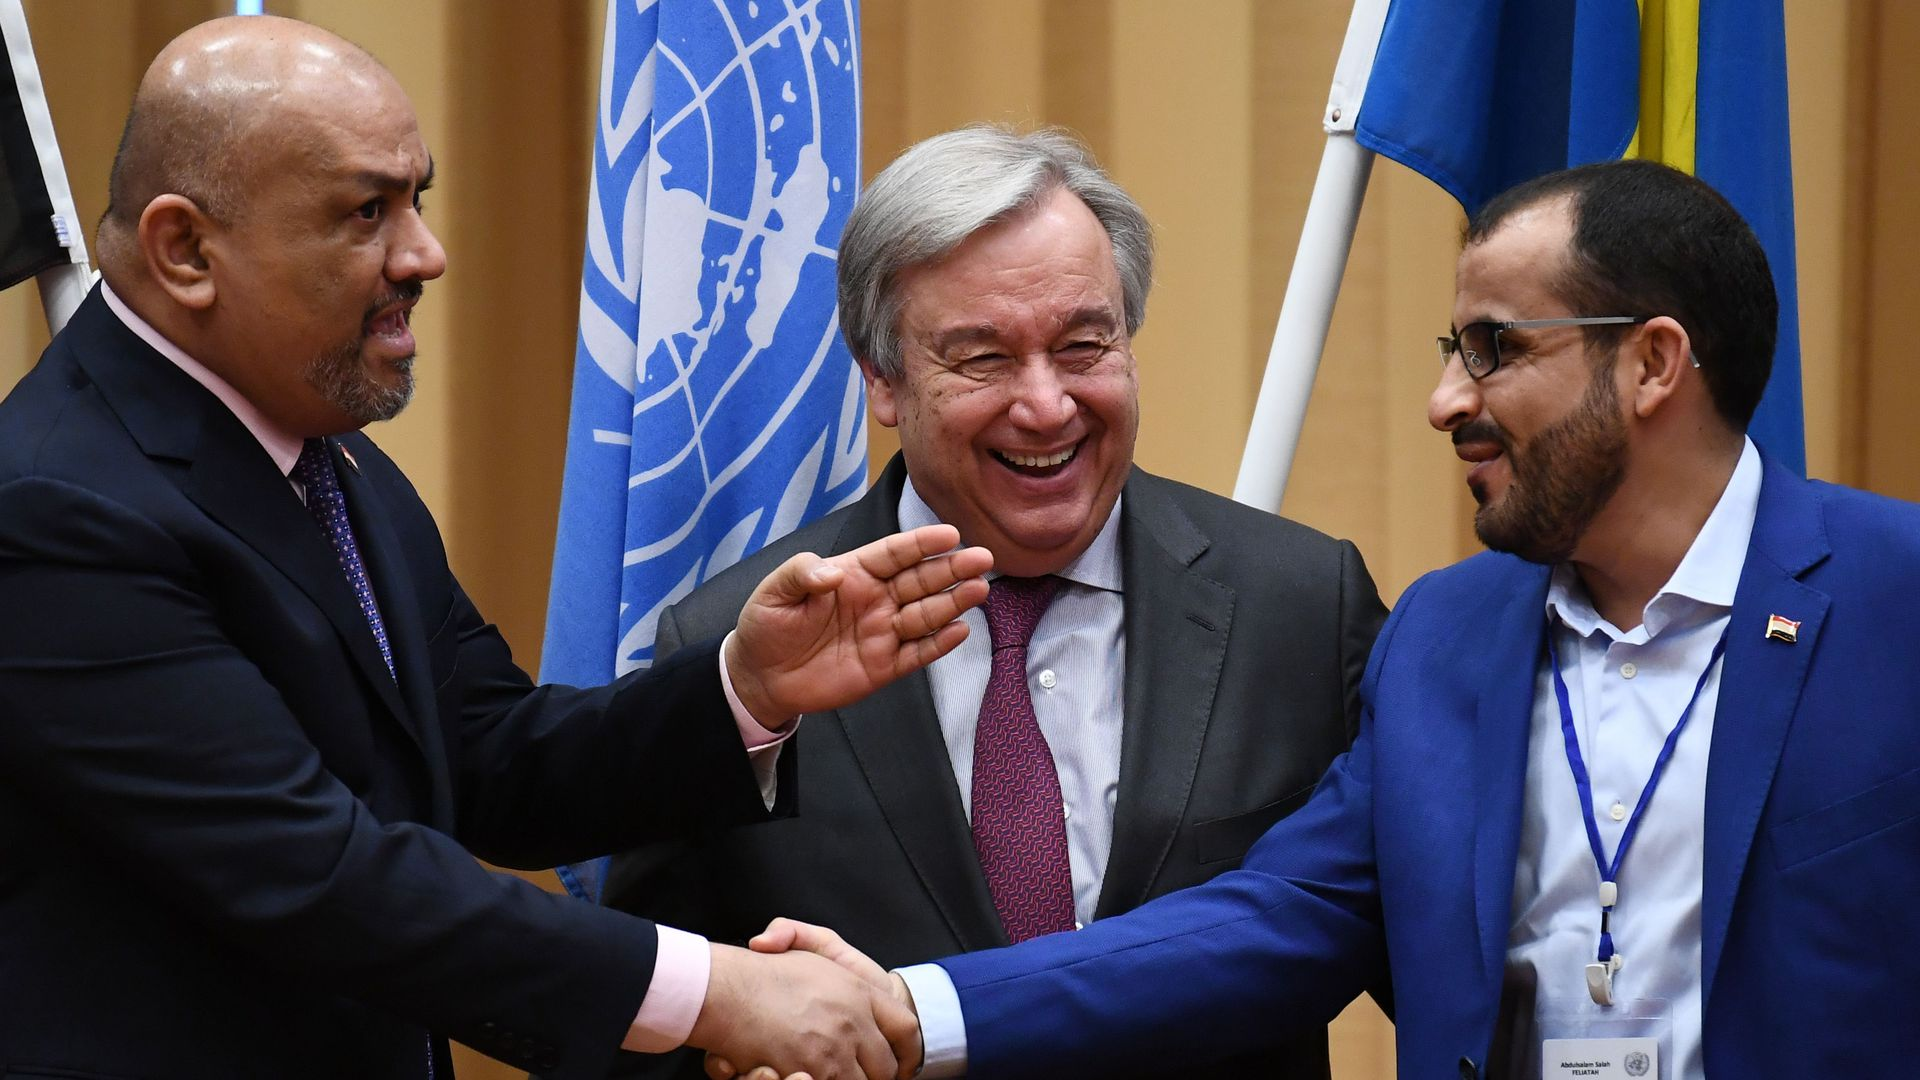 Yemen's foreign minister Khaled al-Yamani (L) and rebel negotiator Mohammed Abdelsalam (R) shake hands under the eyes of United Nations Secretary General Antonio Guterres during peace consultations